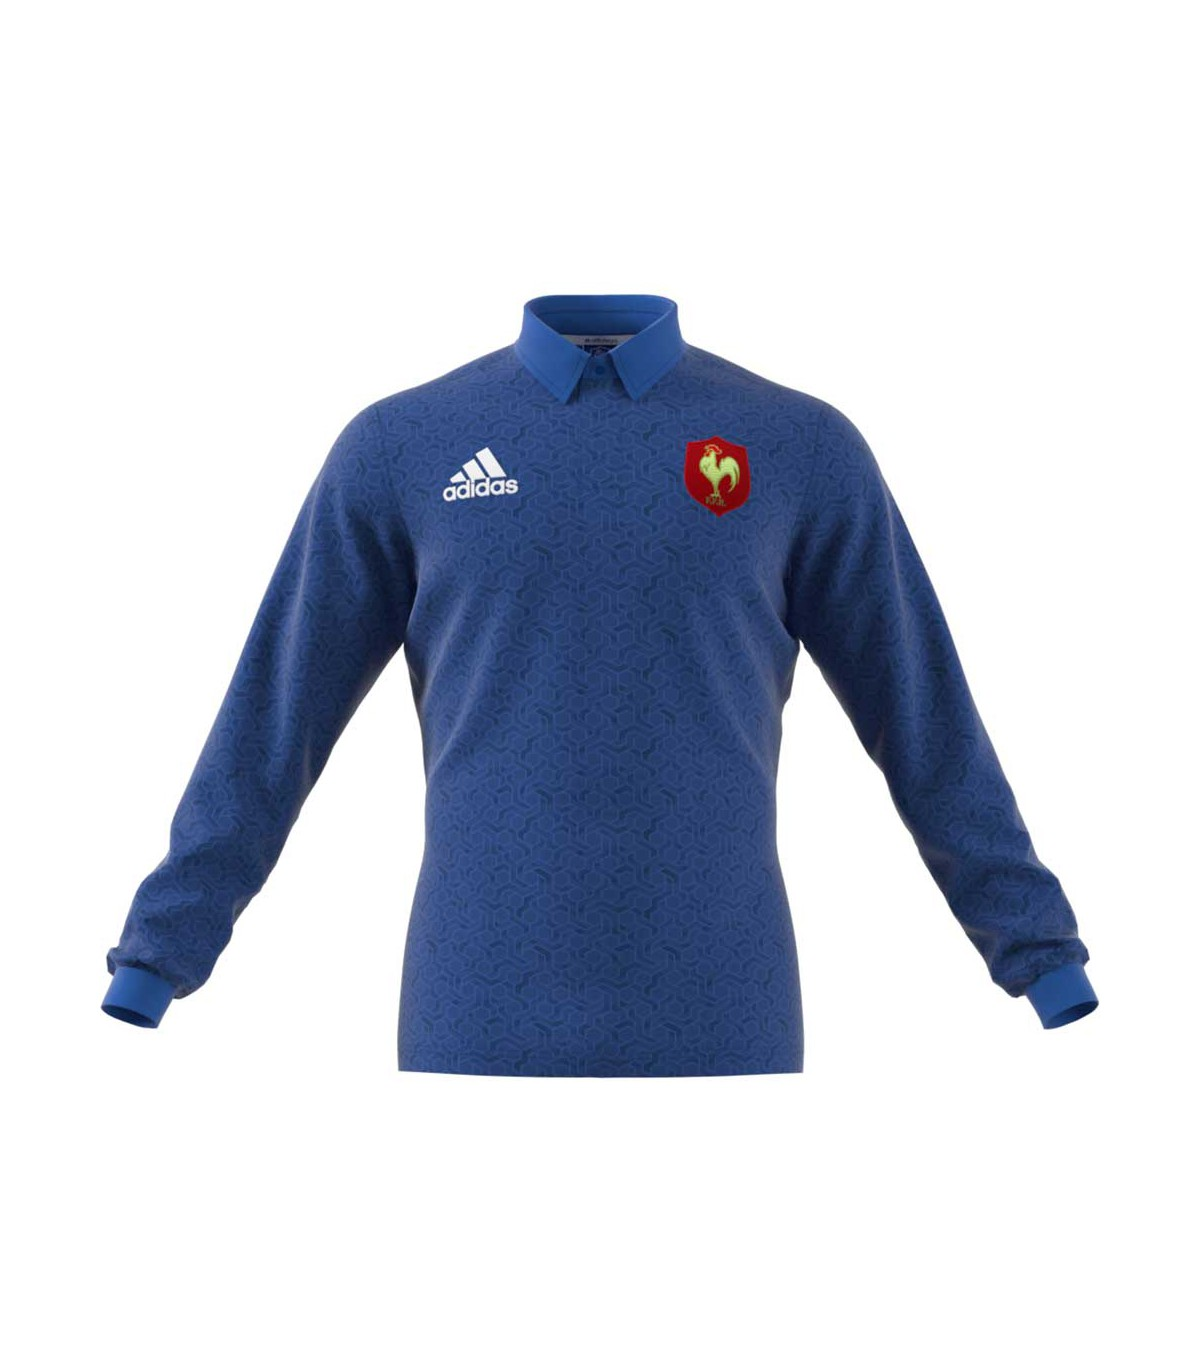 Polo rugby XV de France 20172018 adulte Adidas chez Rugby Corner